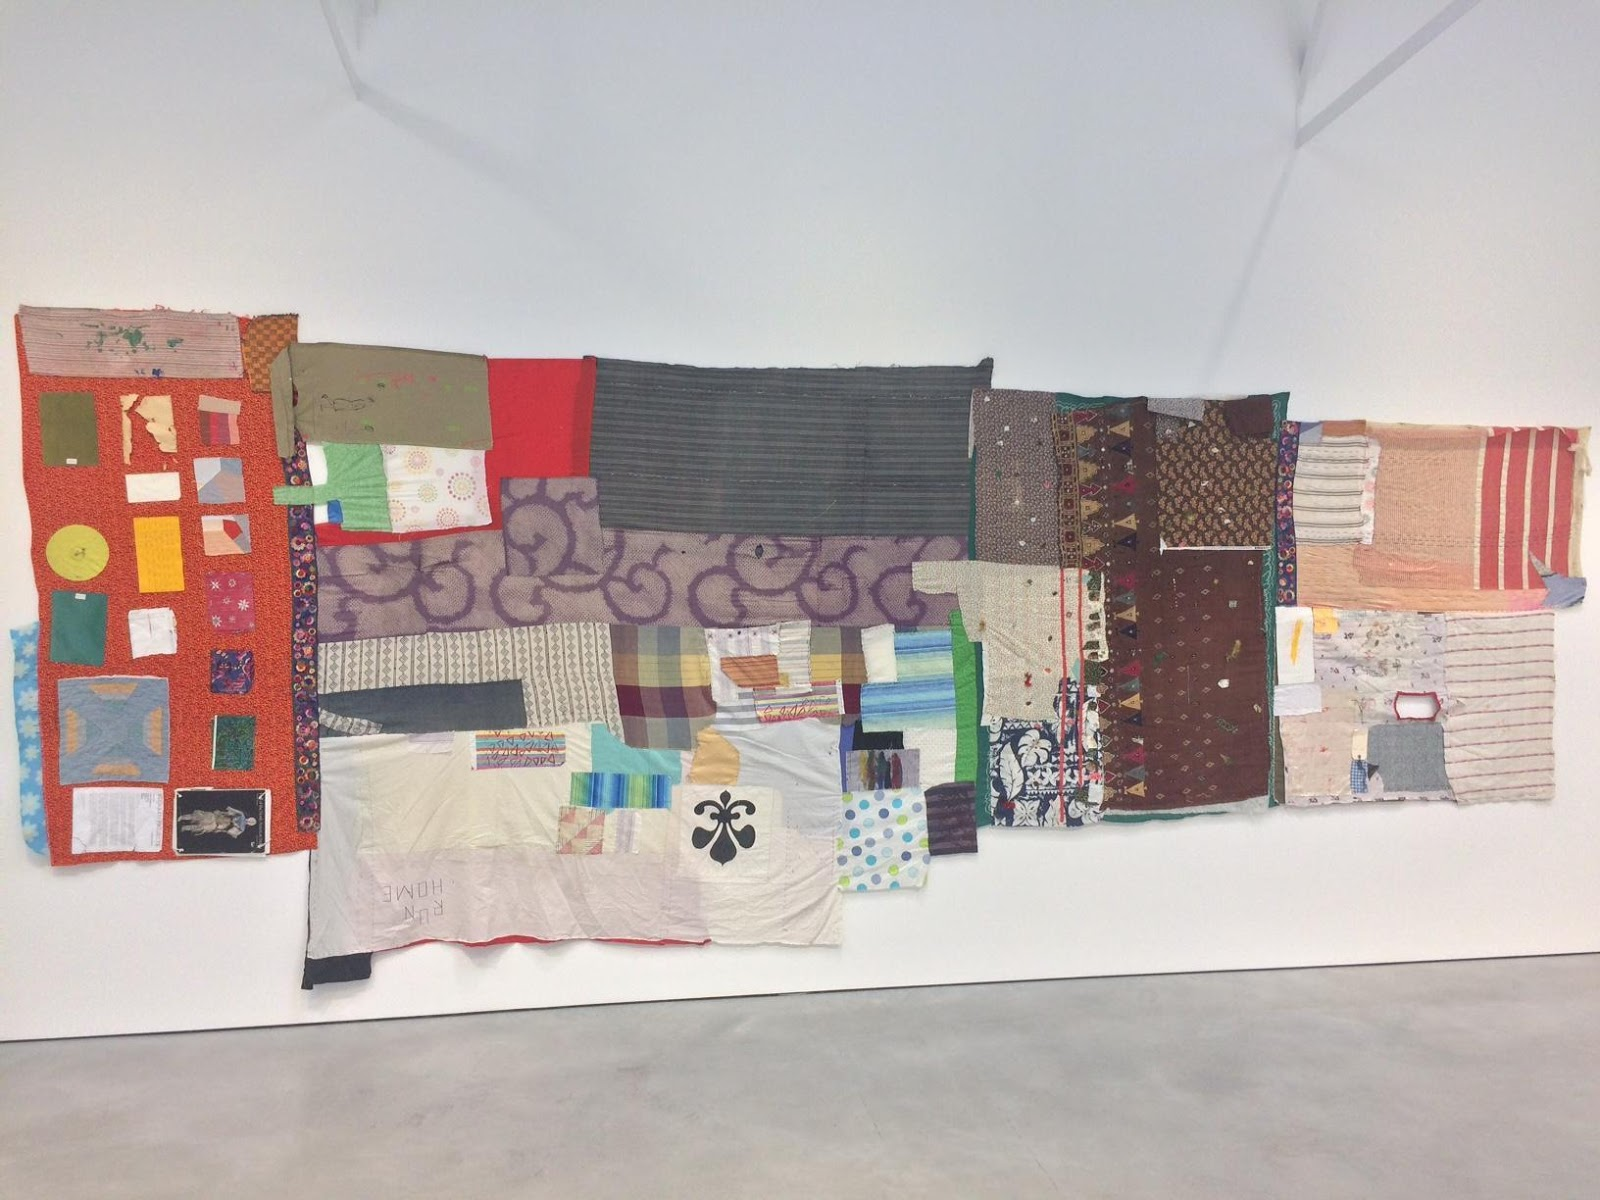 Susan Cianciolo,  Tapestry 1  (2010-17) on view at Modern Art, London. Photo courtesy the author.